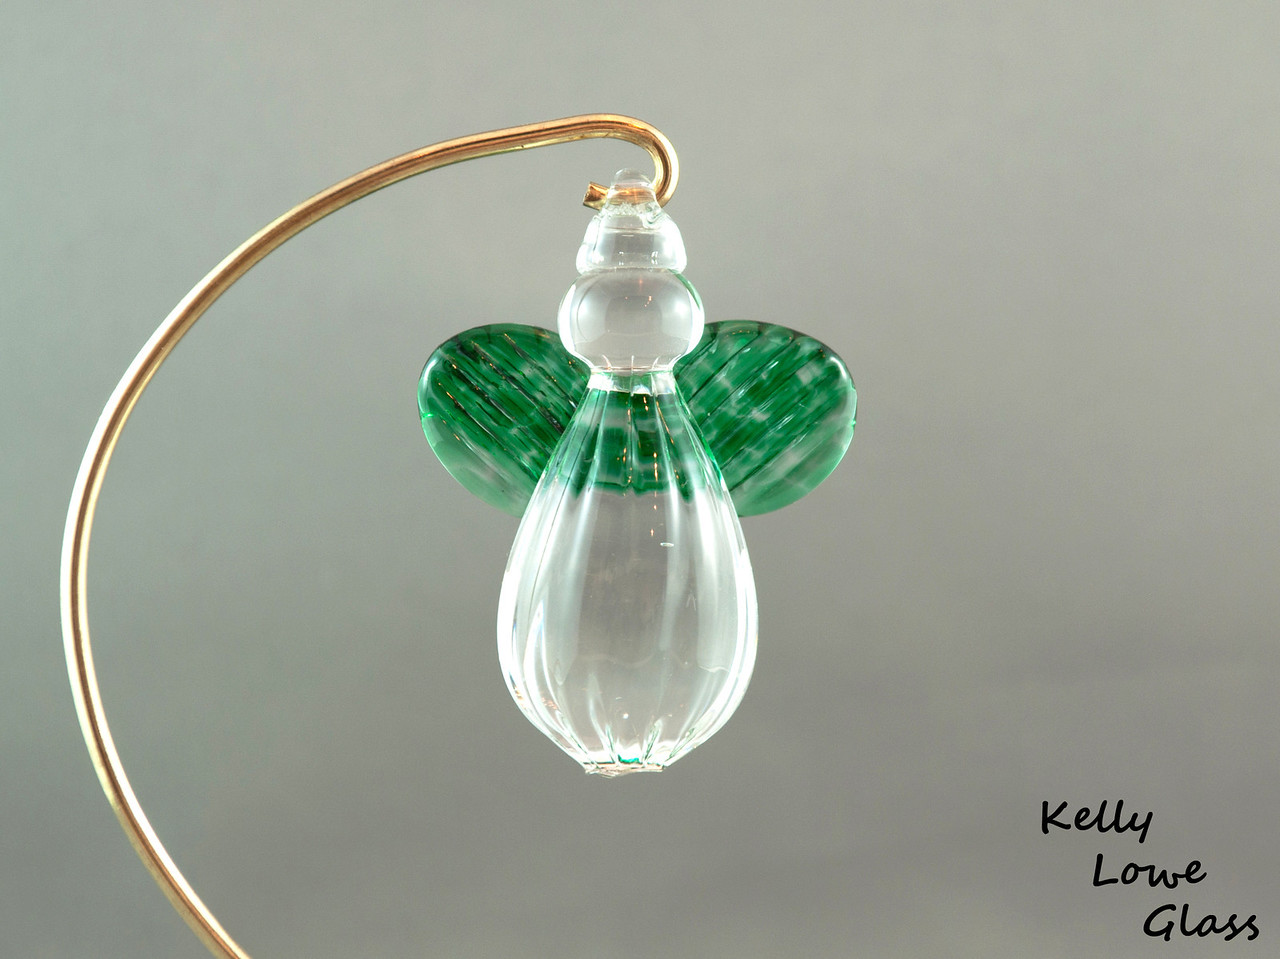 """Hanging Glass Angel - Green  Height: Approx 8cm (3.15"""") Across the Wings: Approx 5.5cm (2.17"""") Depth: Approx 3cm (1.19"""") Weight: Approx 85g (0.19 lbs)  *Brass hanger in pictures is not included  Please note: as each piece begins its life as molten glass and is blown/sculpted by hand into the final product, individual pieces might have slight variations in size and/or appearance. Please rest assured however that the standard of quality is quite high, and no substandard pieces will be sold."""